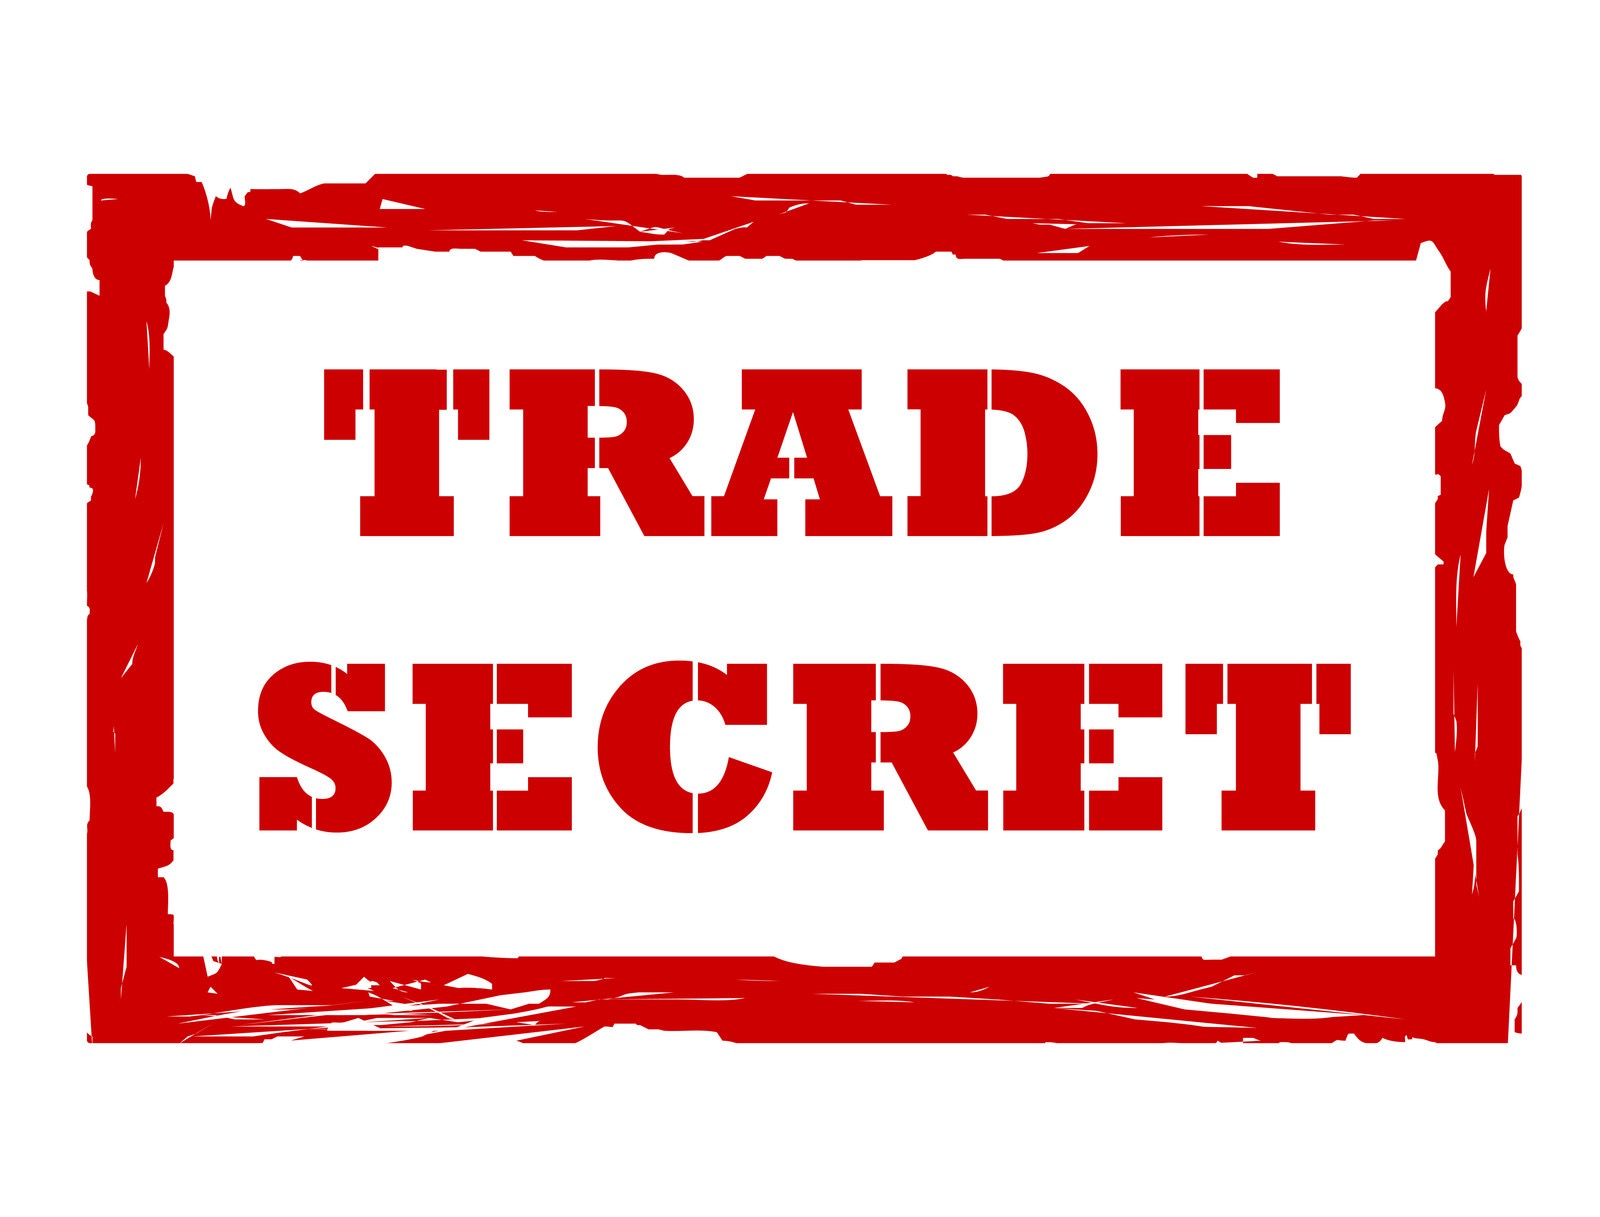 Important EU-wide and Worldwide Consequences: The EU Directive on Trade Secrets